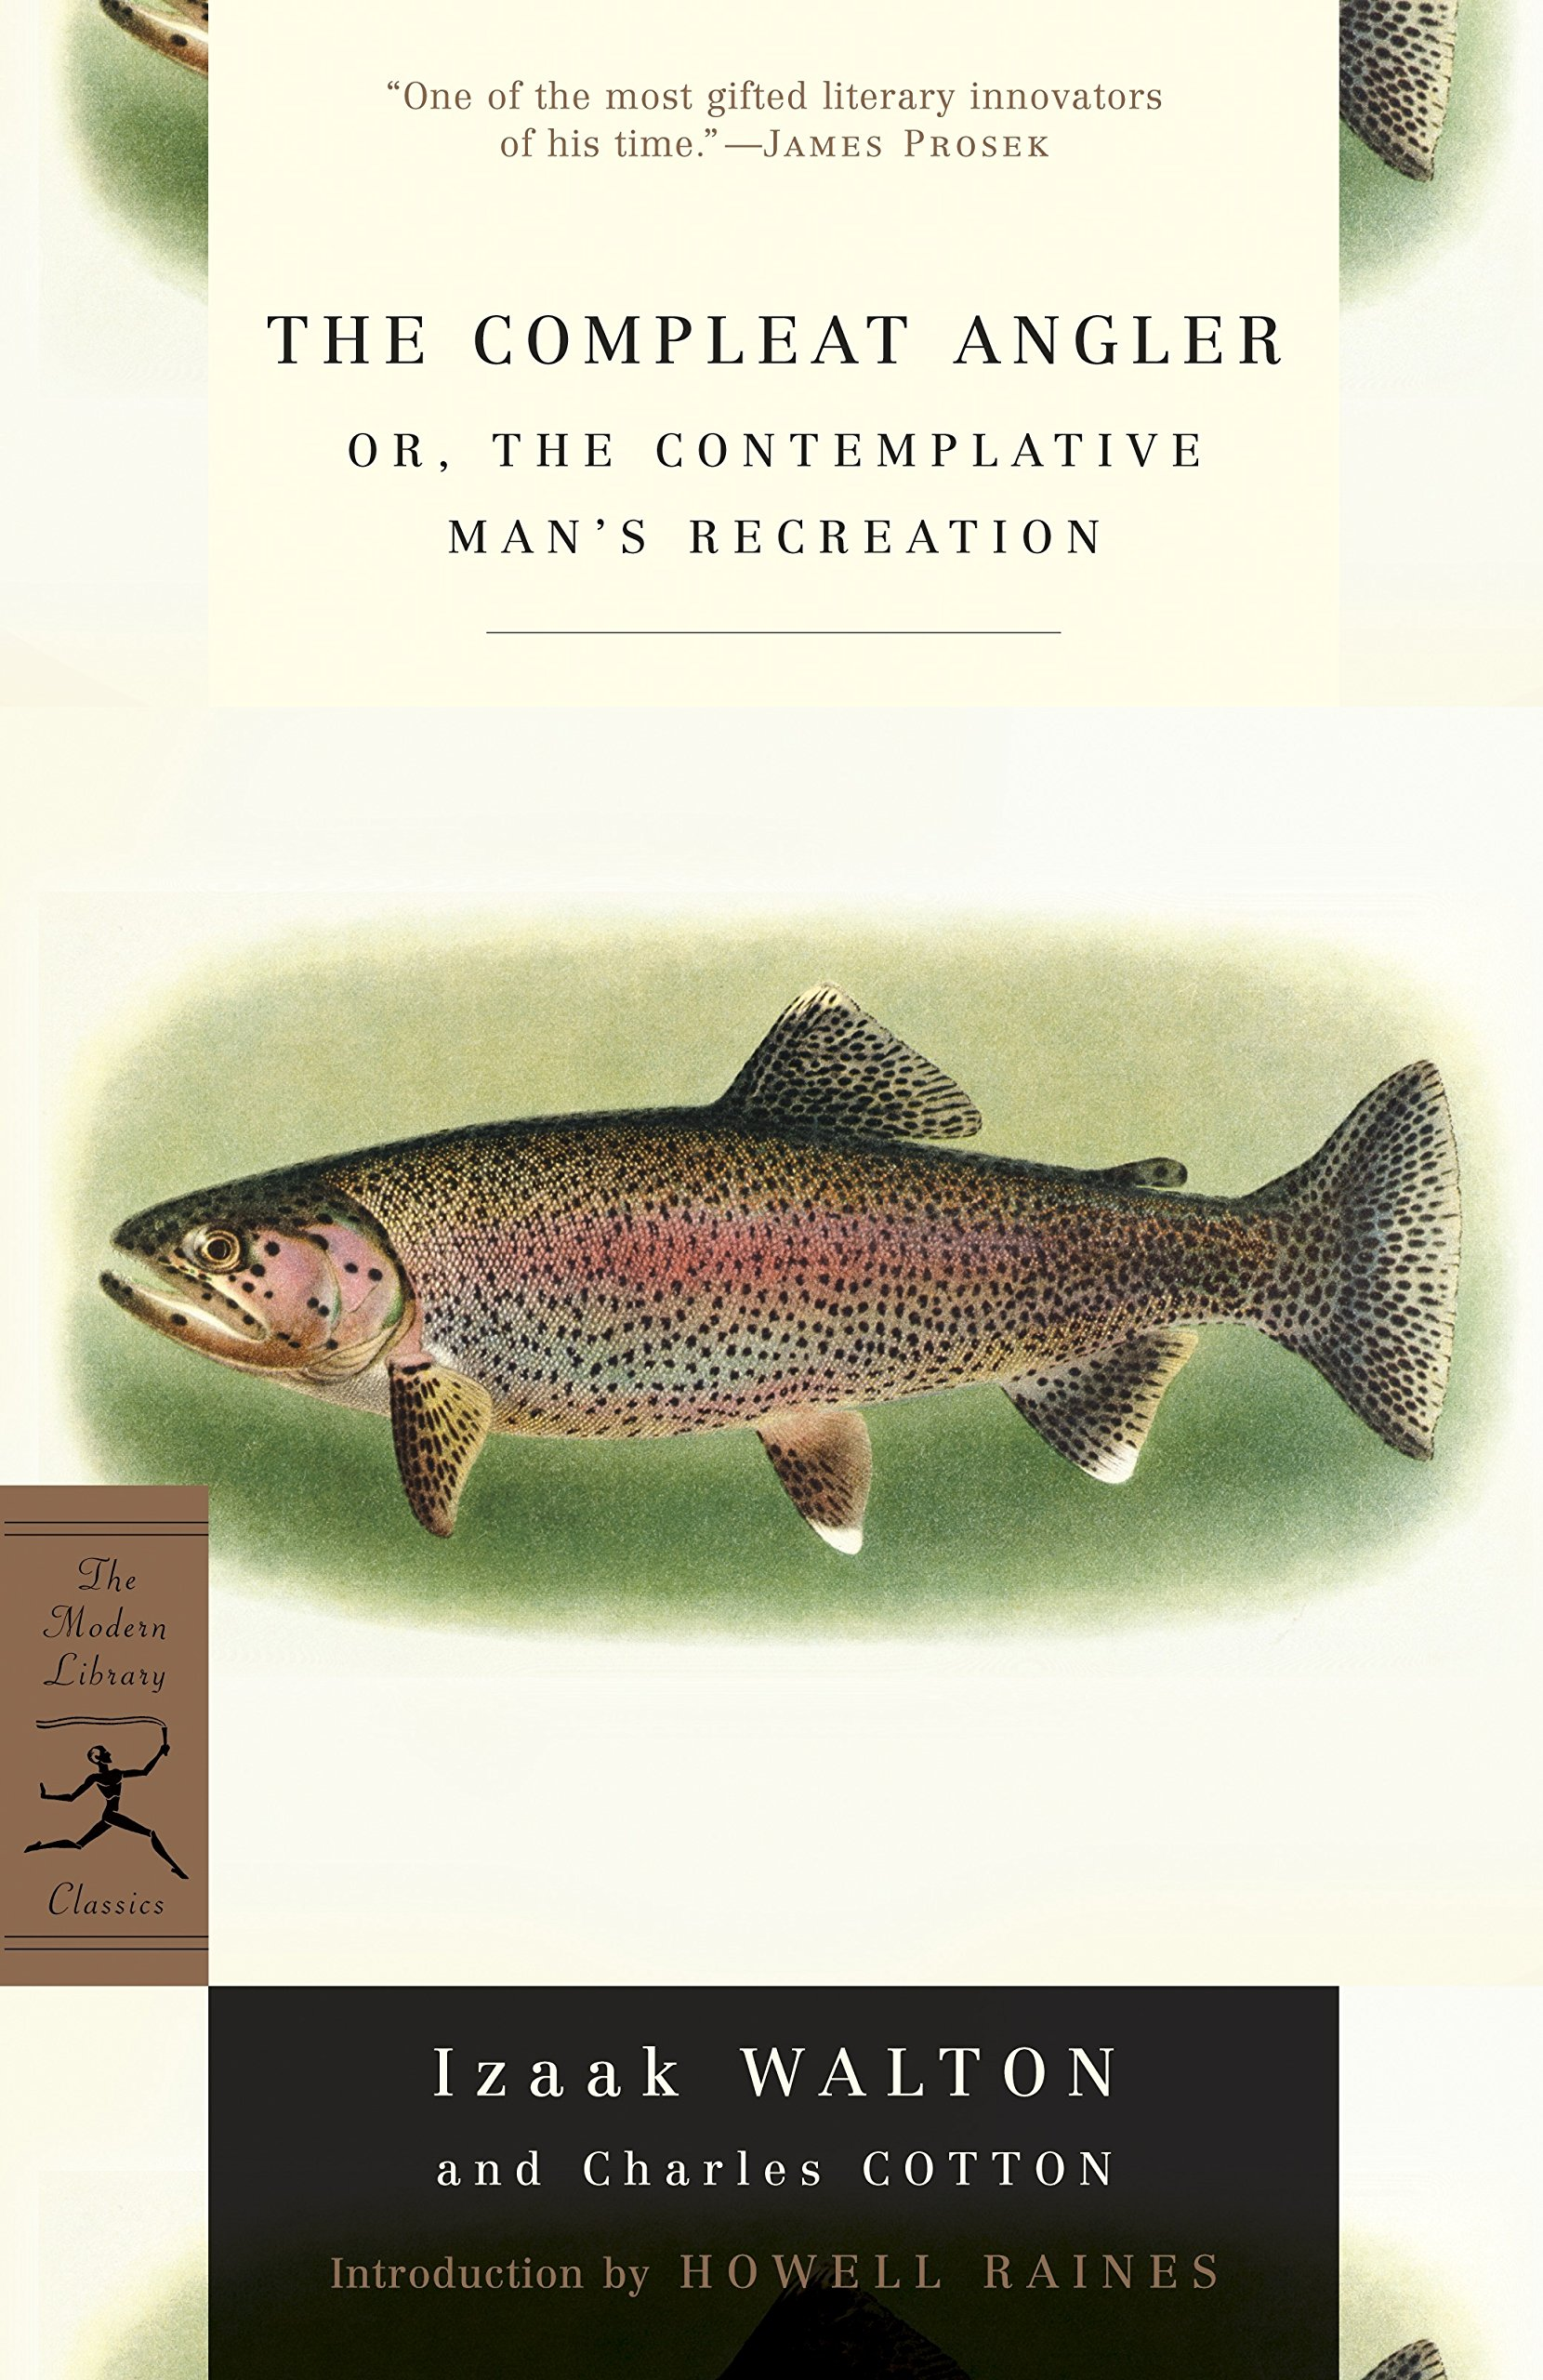 The Compleat Angler: or, The Contemplative Man's Recreation (Modern Library Classics)